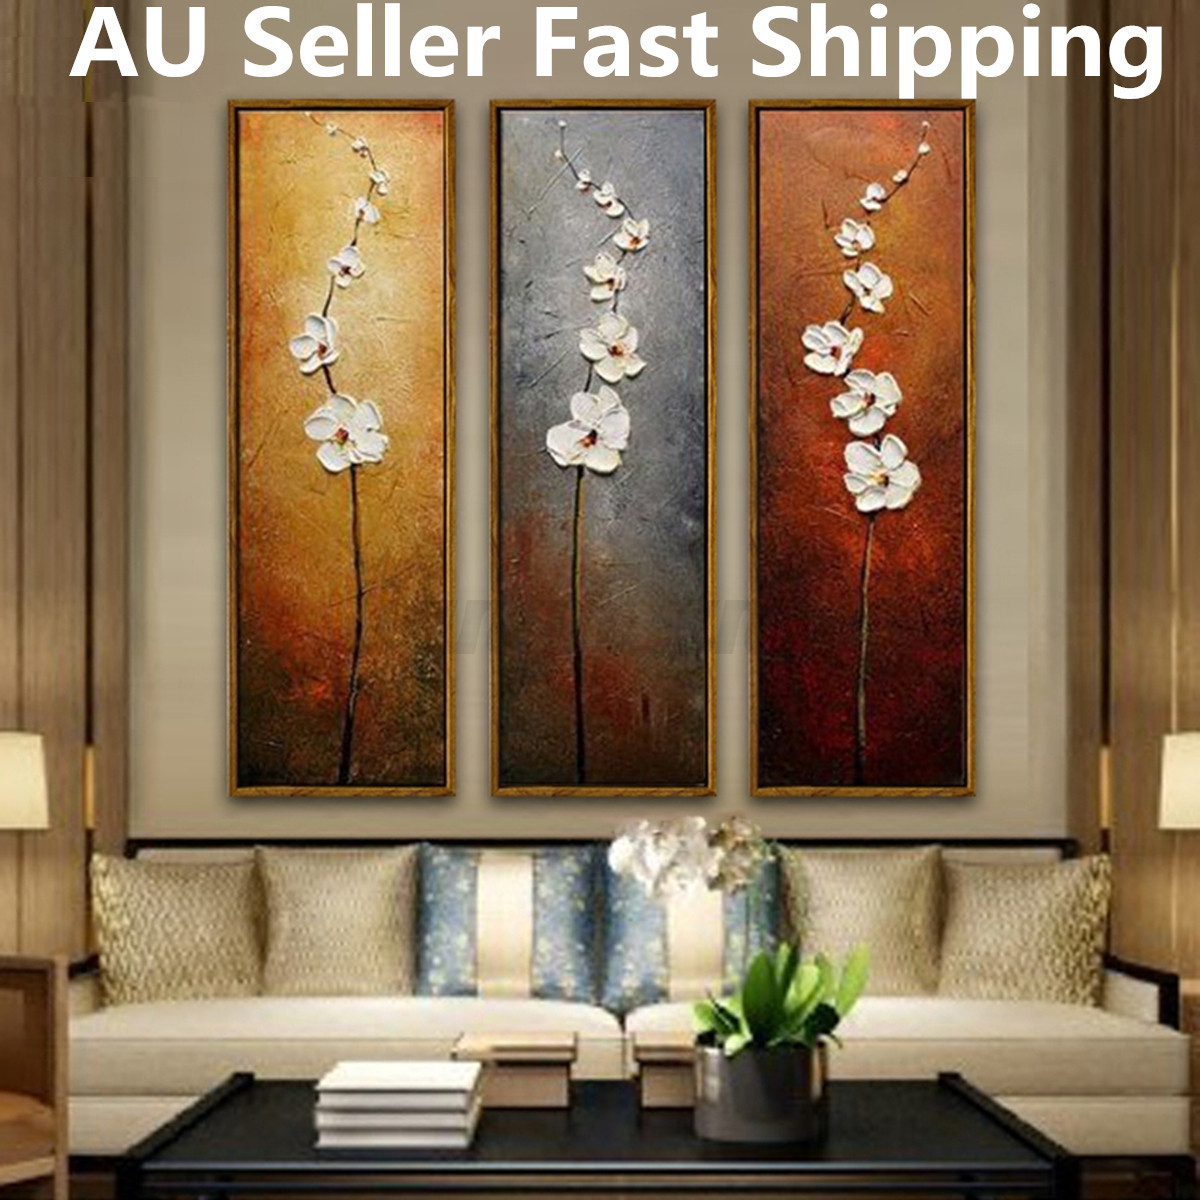 3pcs Unframed Colorful Flower Canvas Abstract Painting Print Art